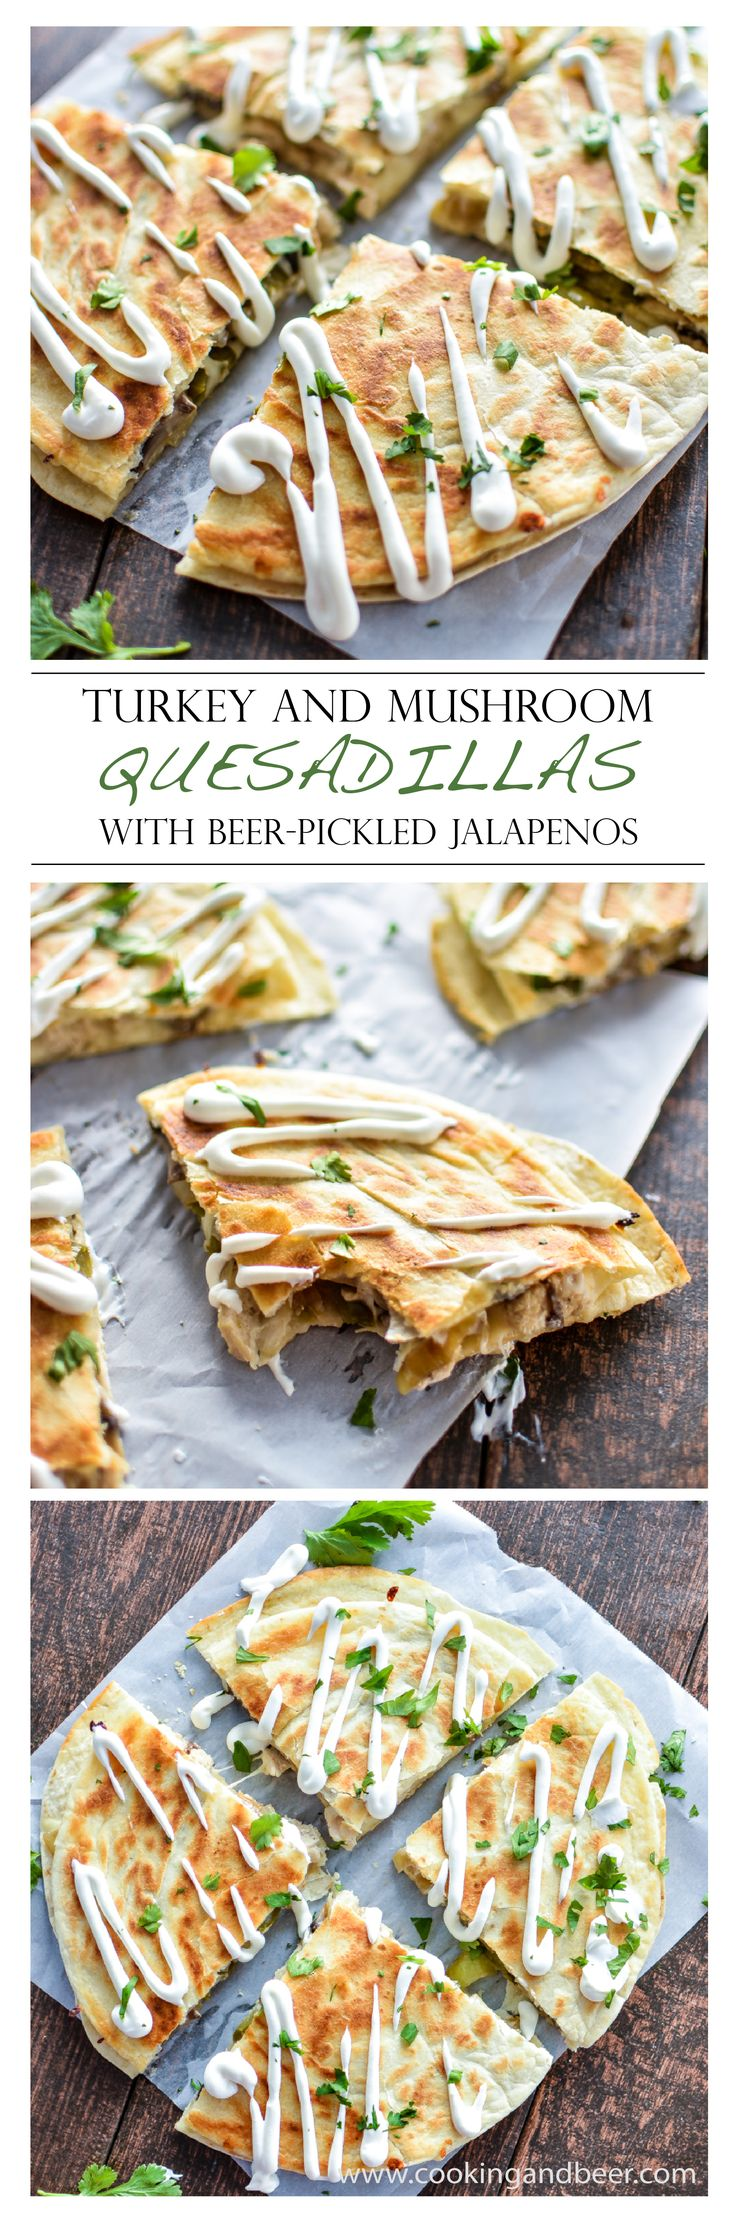 Turkey and Mushroom Quesadillas with Beer-Pickled Jalapeños -- post also includes the perfect beer pairings for this recipe.